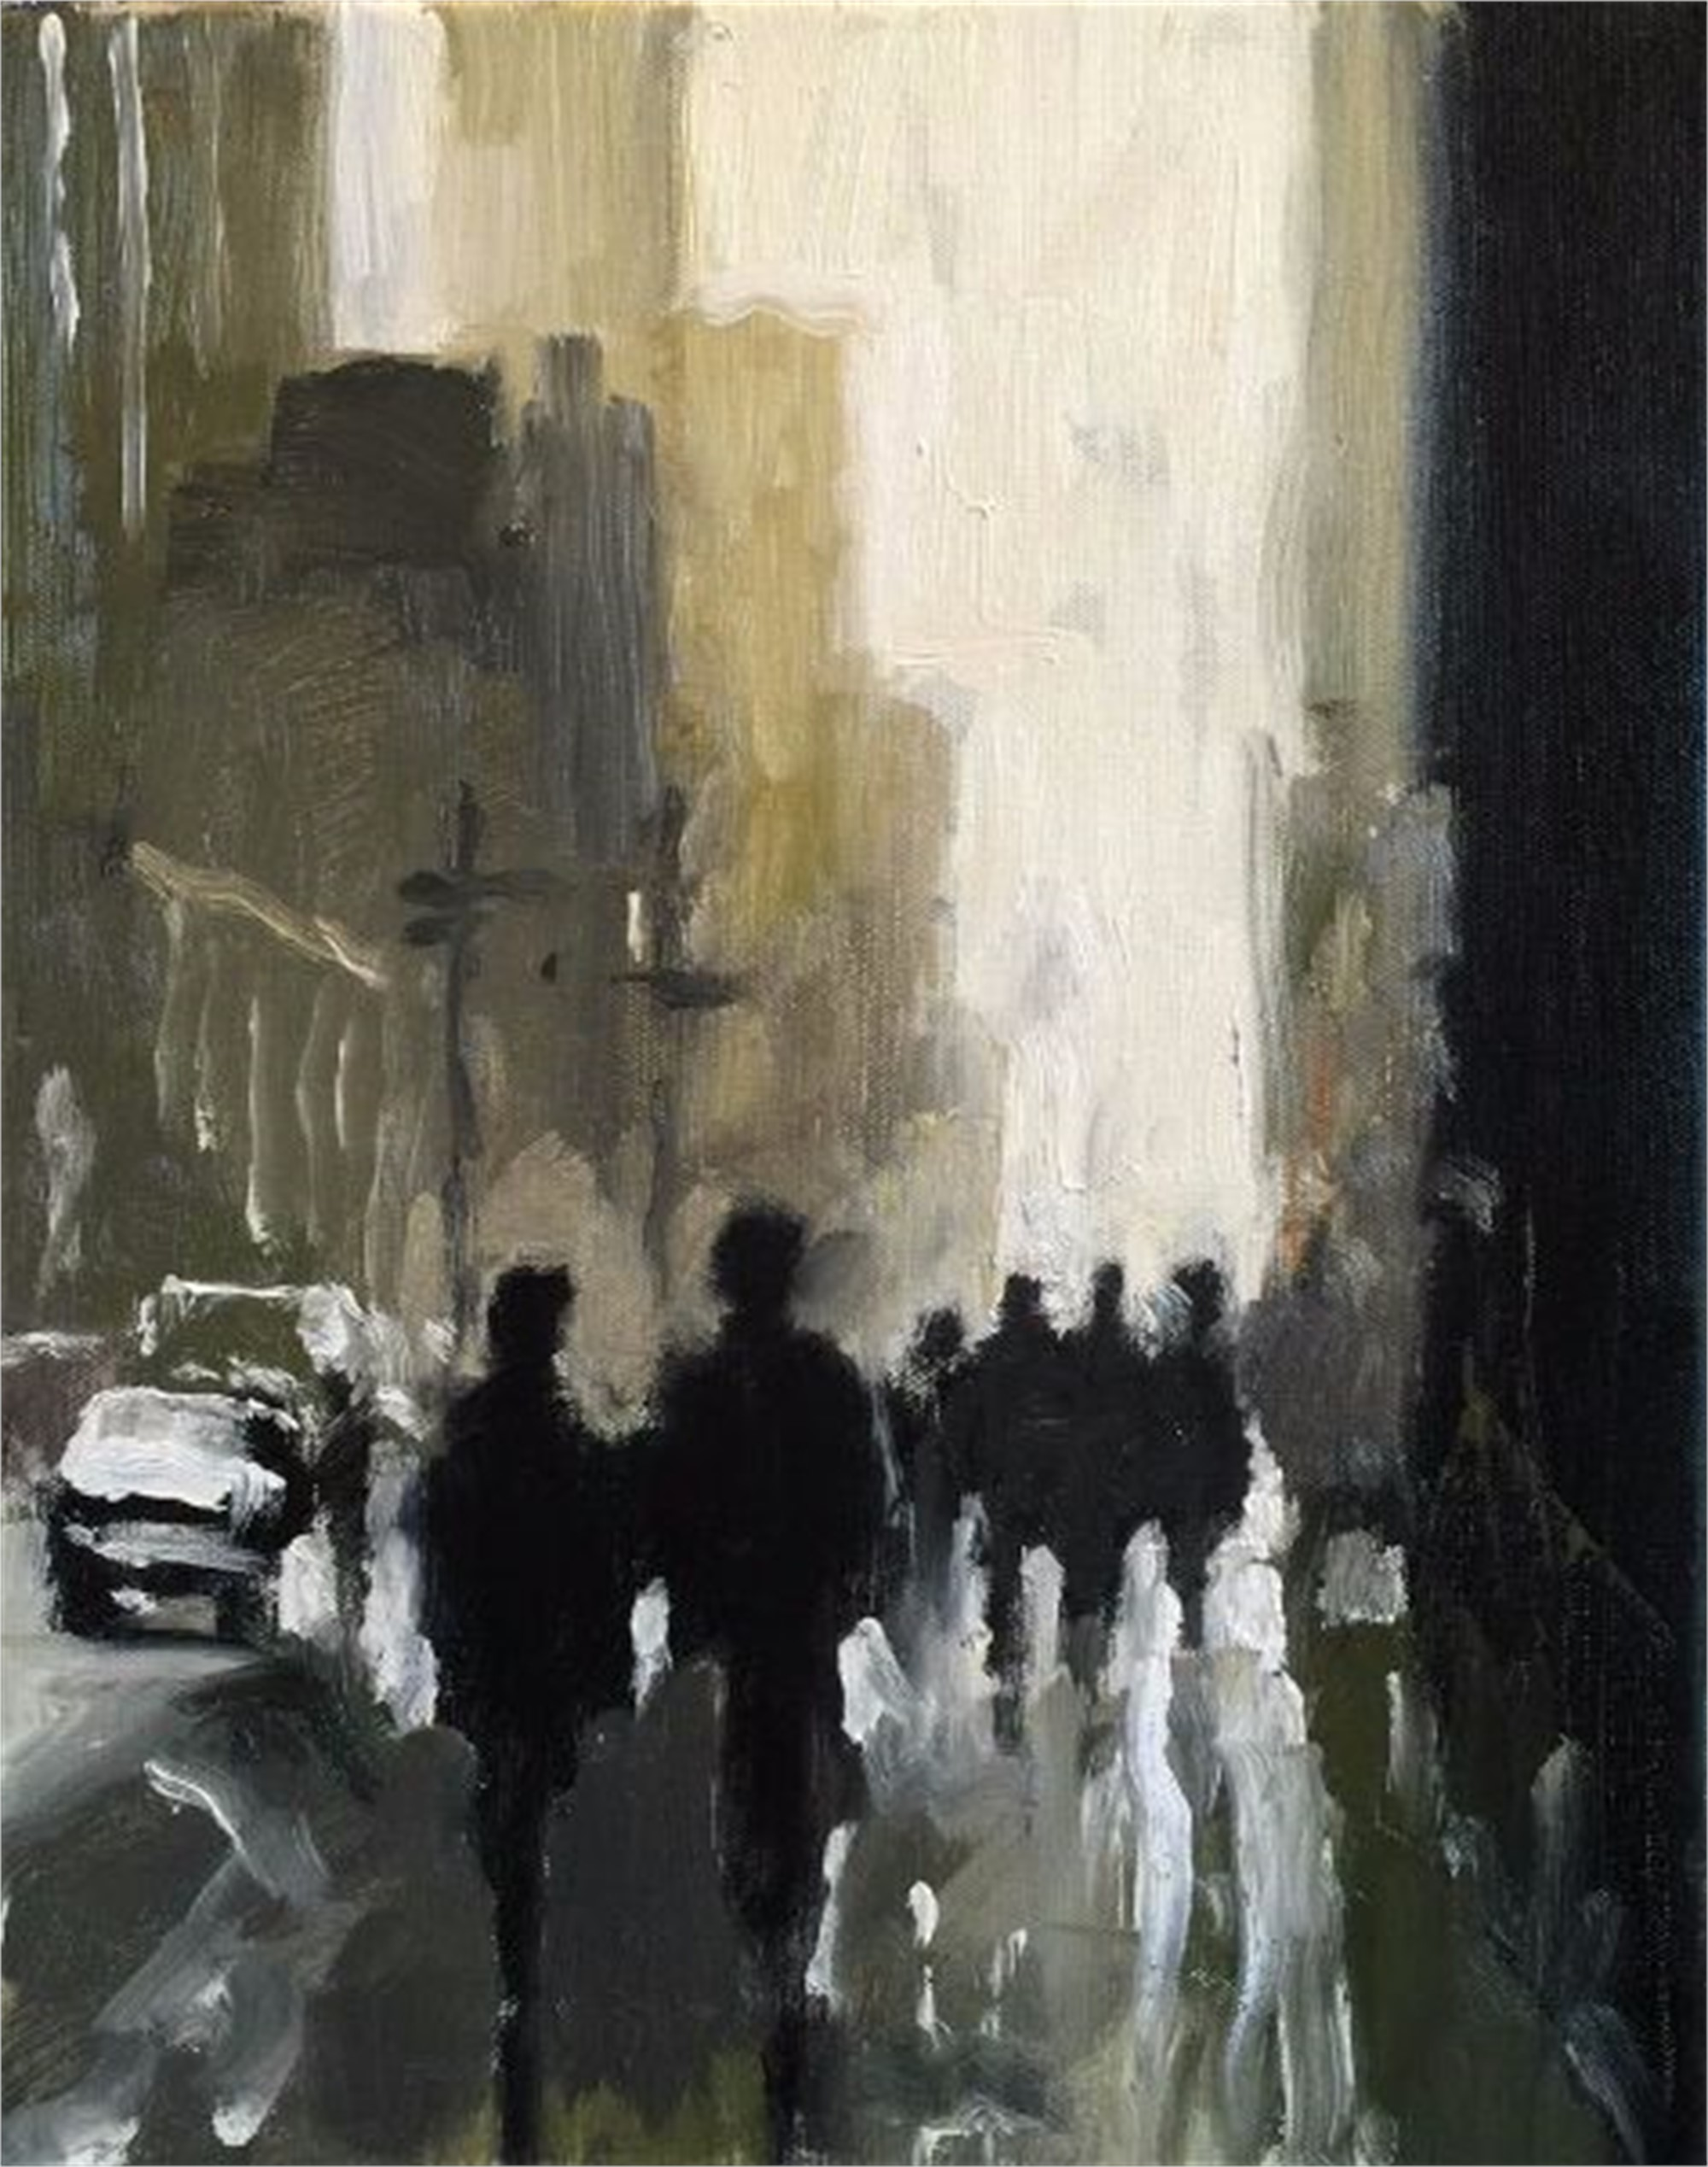 In Midtown by Betsy Havens